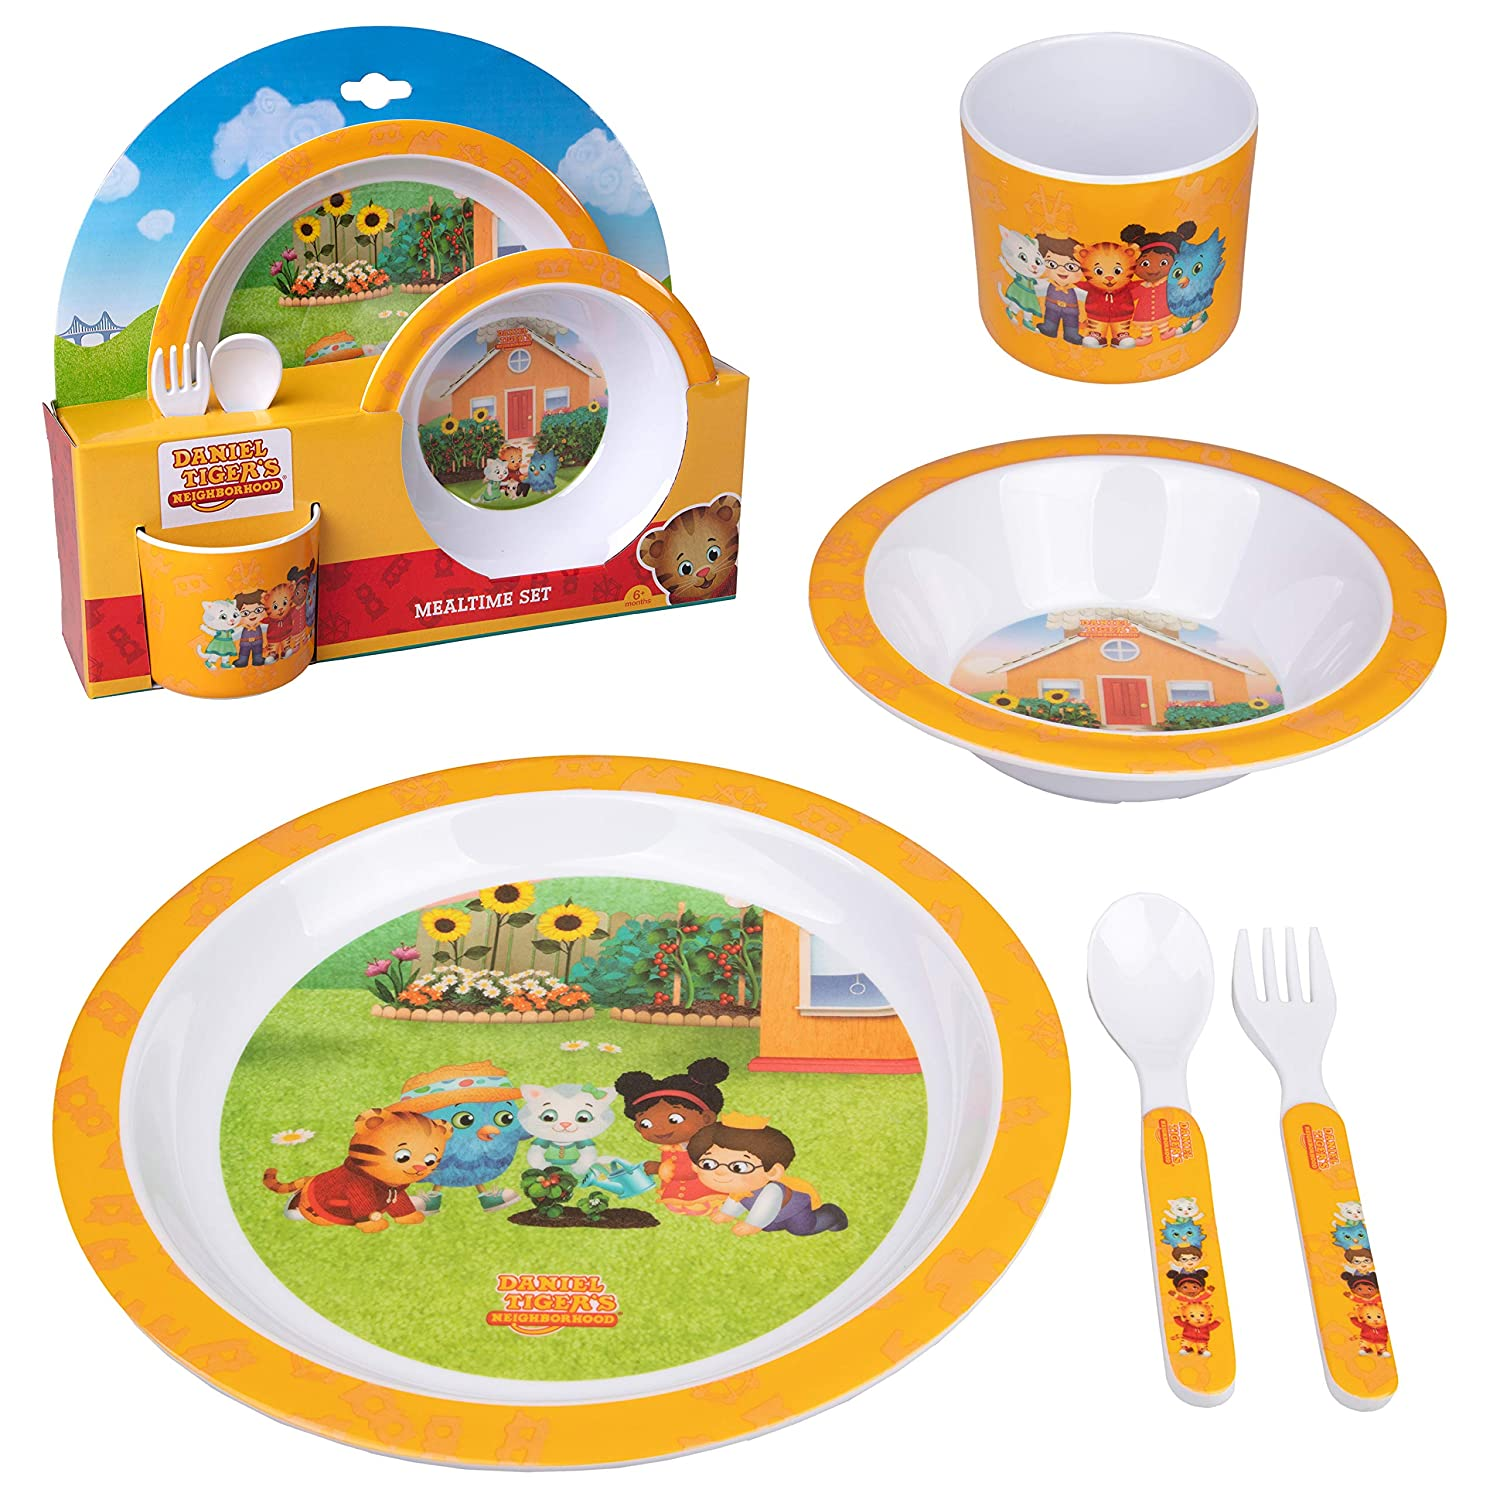 Daniel Tiger 5 Pc Kids Plates Mealtime Feeding Set for Toddlers- BPA Free Dinnerware Dish Set and Utensils Includes Plate, Bowl, Cup, Fork and Spoon w Durable Dishwasher Safe Plastic Flatware (Yellow)